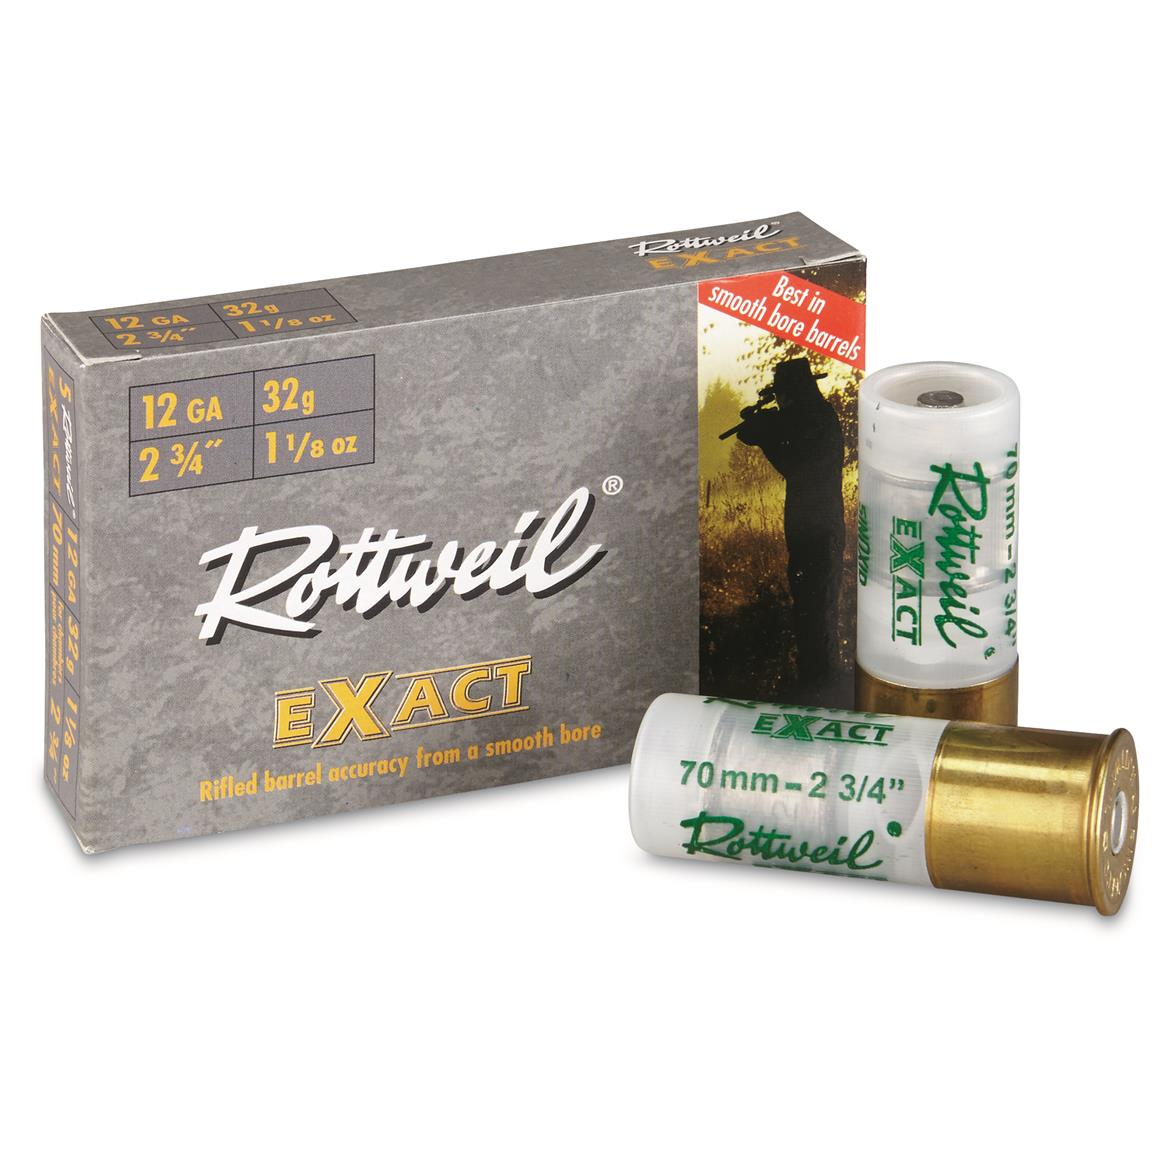 "Rottweil Exact, 12 Gauge, 2.75"" Shell, 1 1/8 oz. Slug, 5 Rounds"